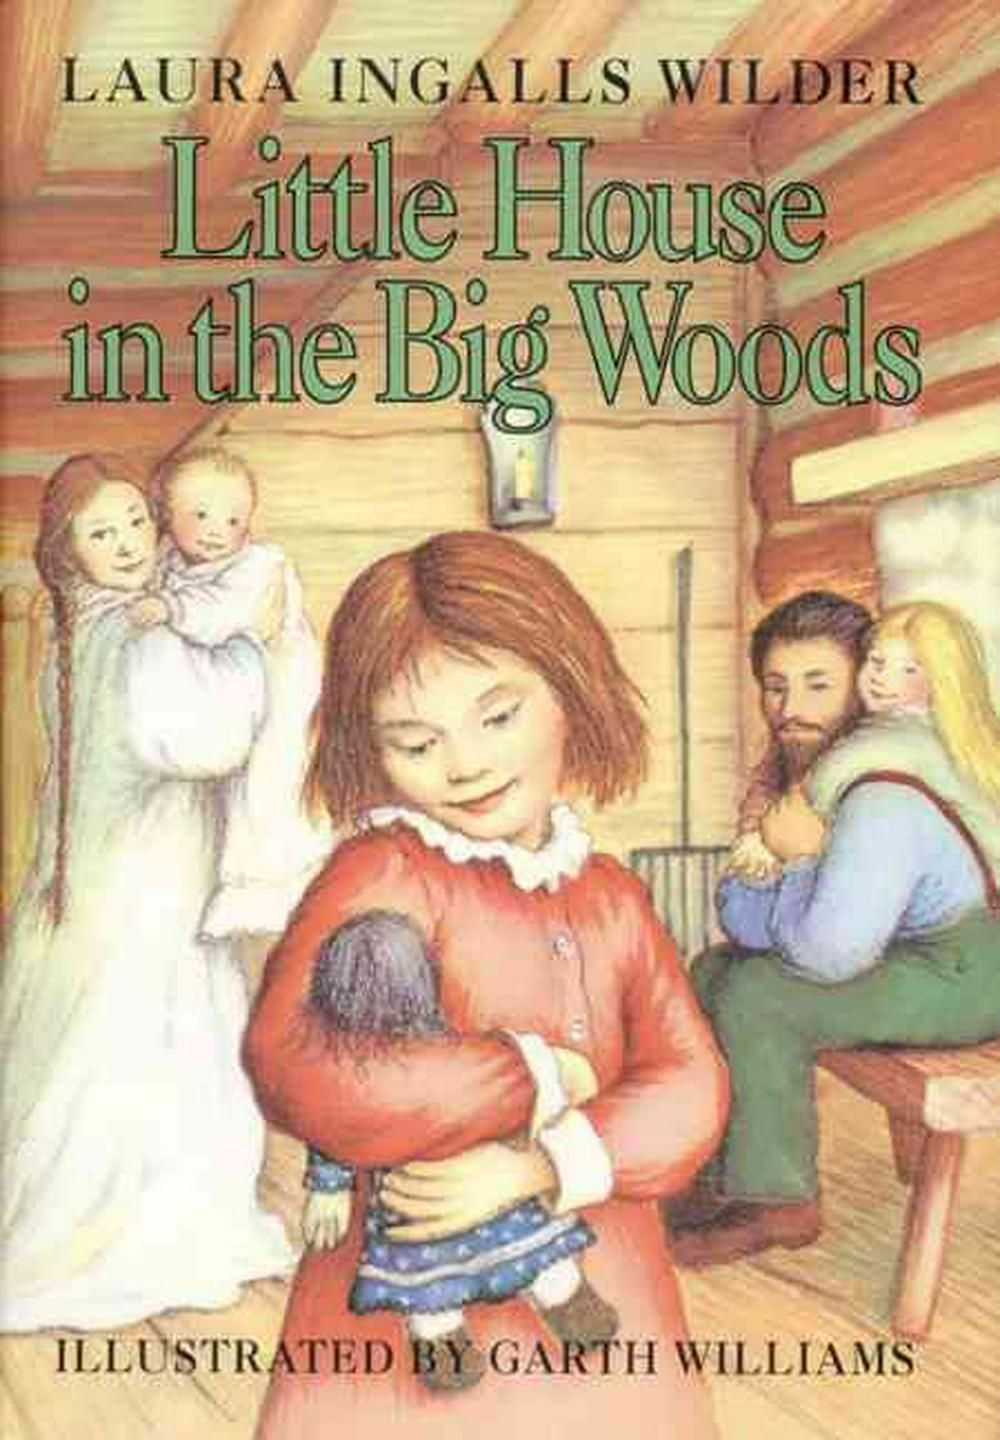 Image Result For Little House In The Big Woods Book Cover